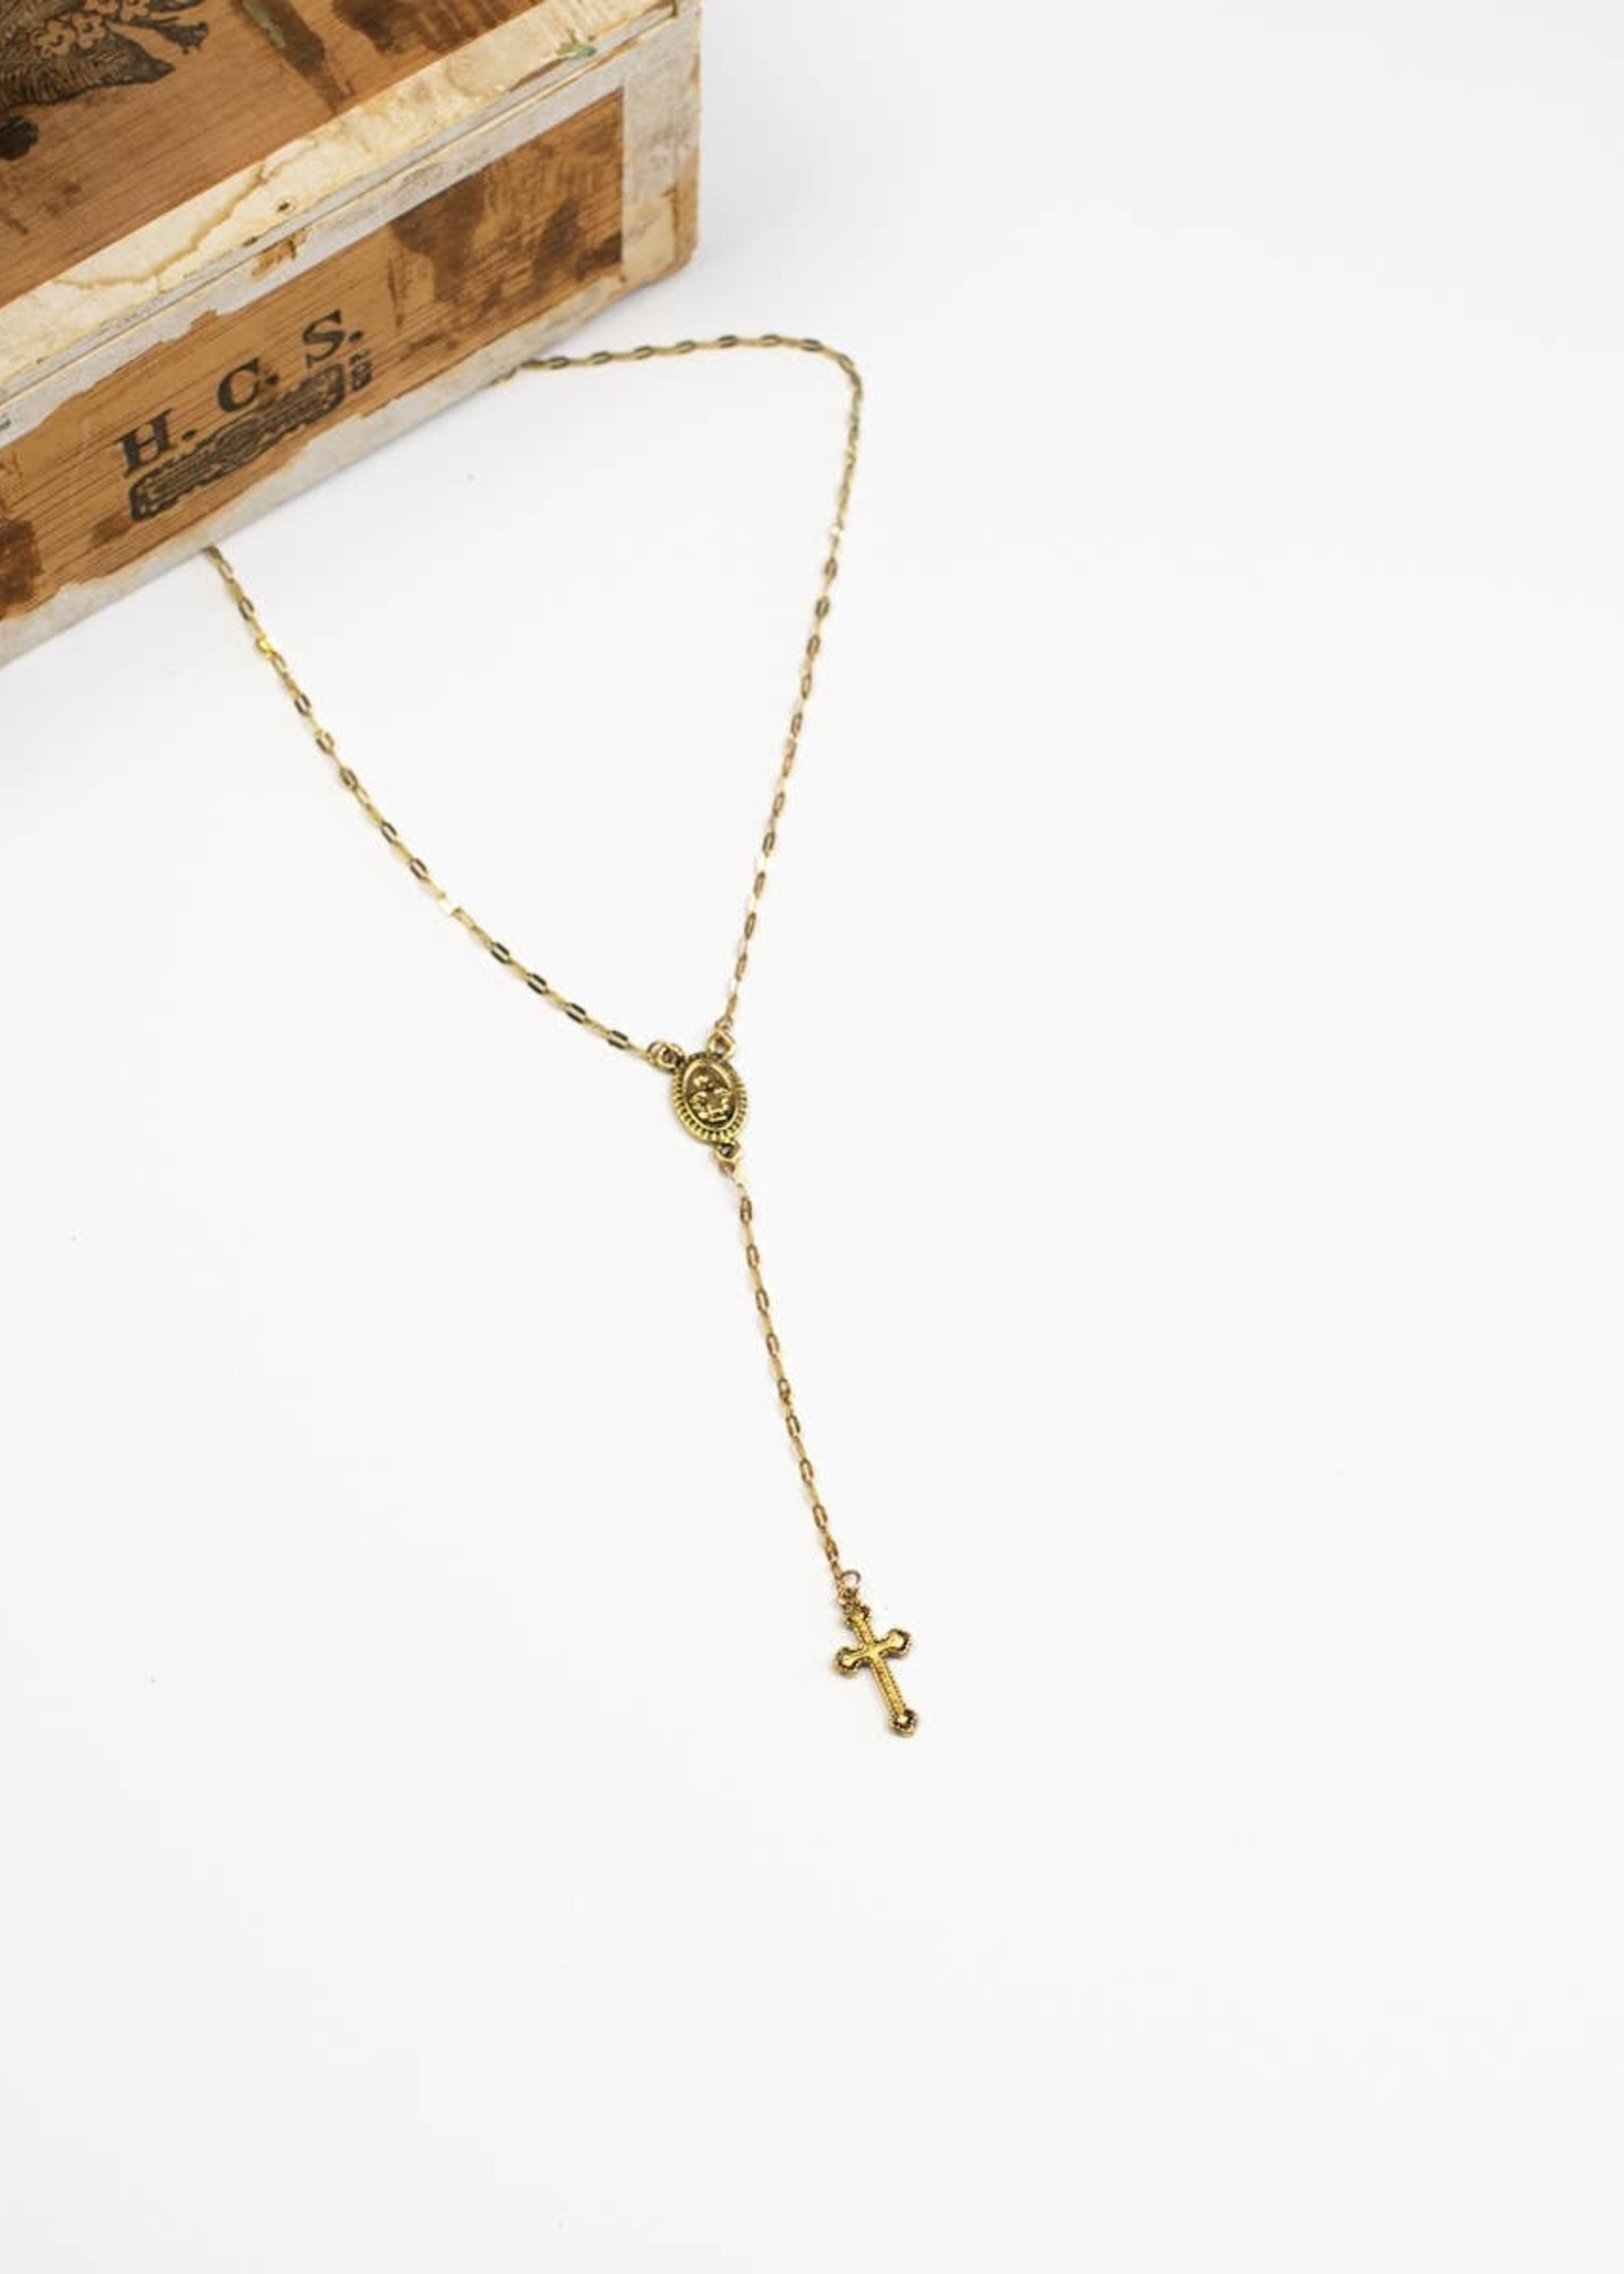 Lariat Style Medallion and Cross Necklace - Goldtone